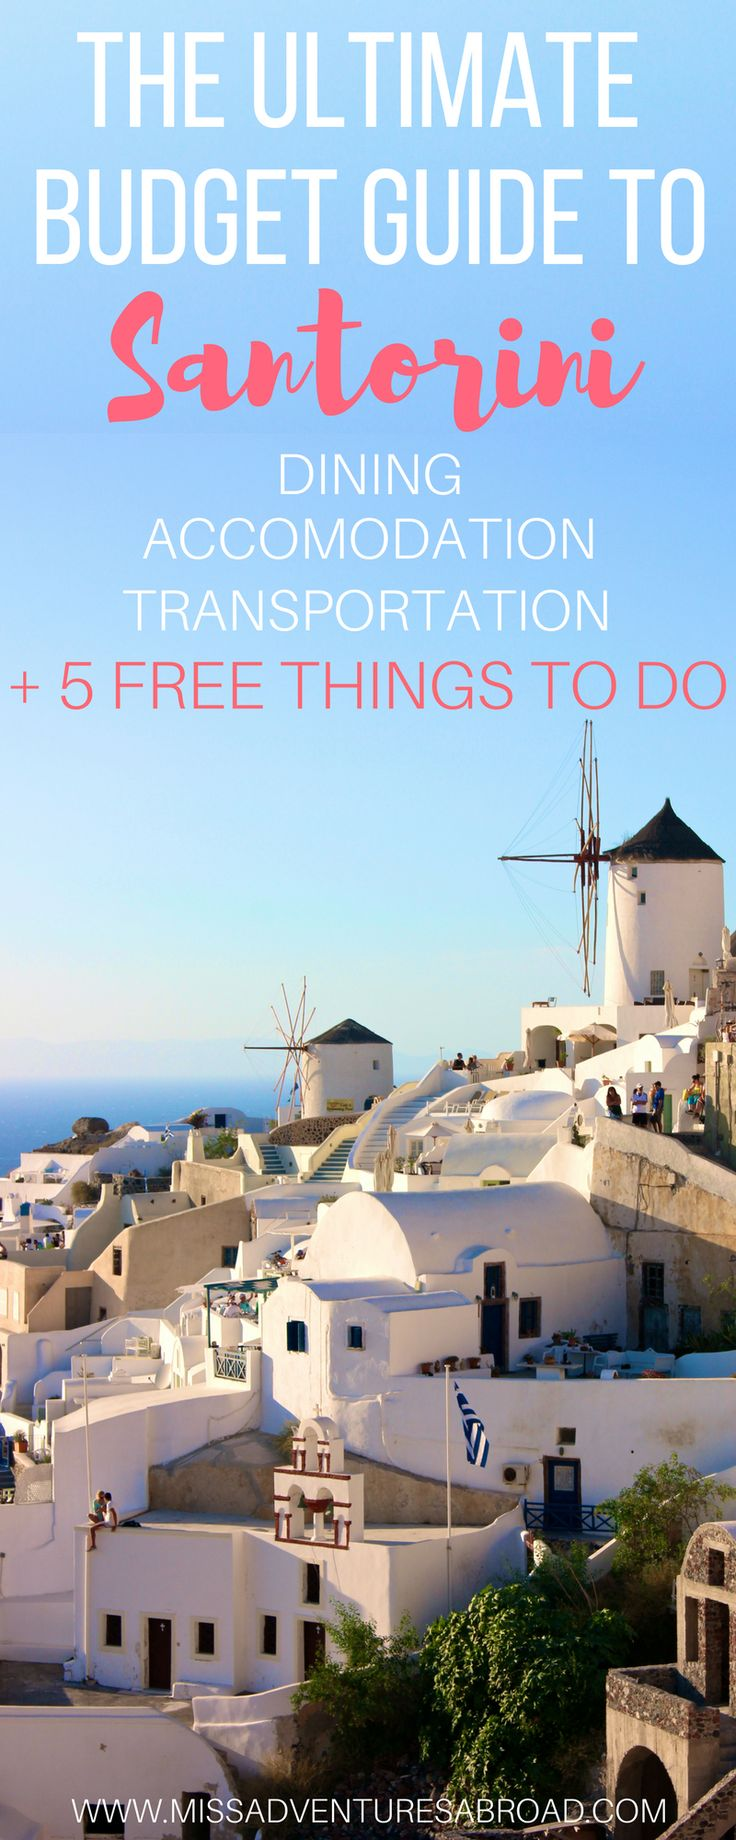 The Ultimate Budget Guide To Santorini   Miss Adventures Abroad